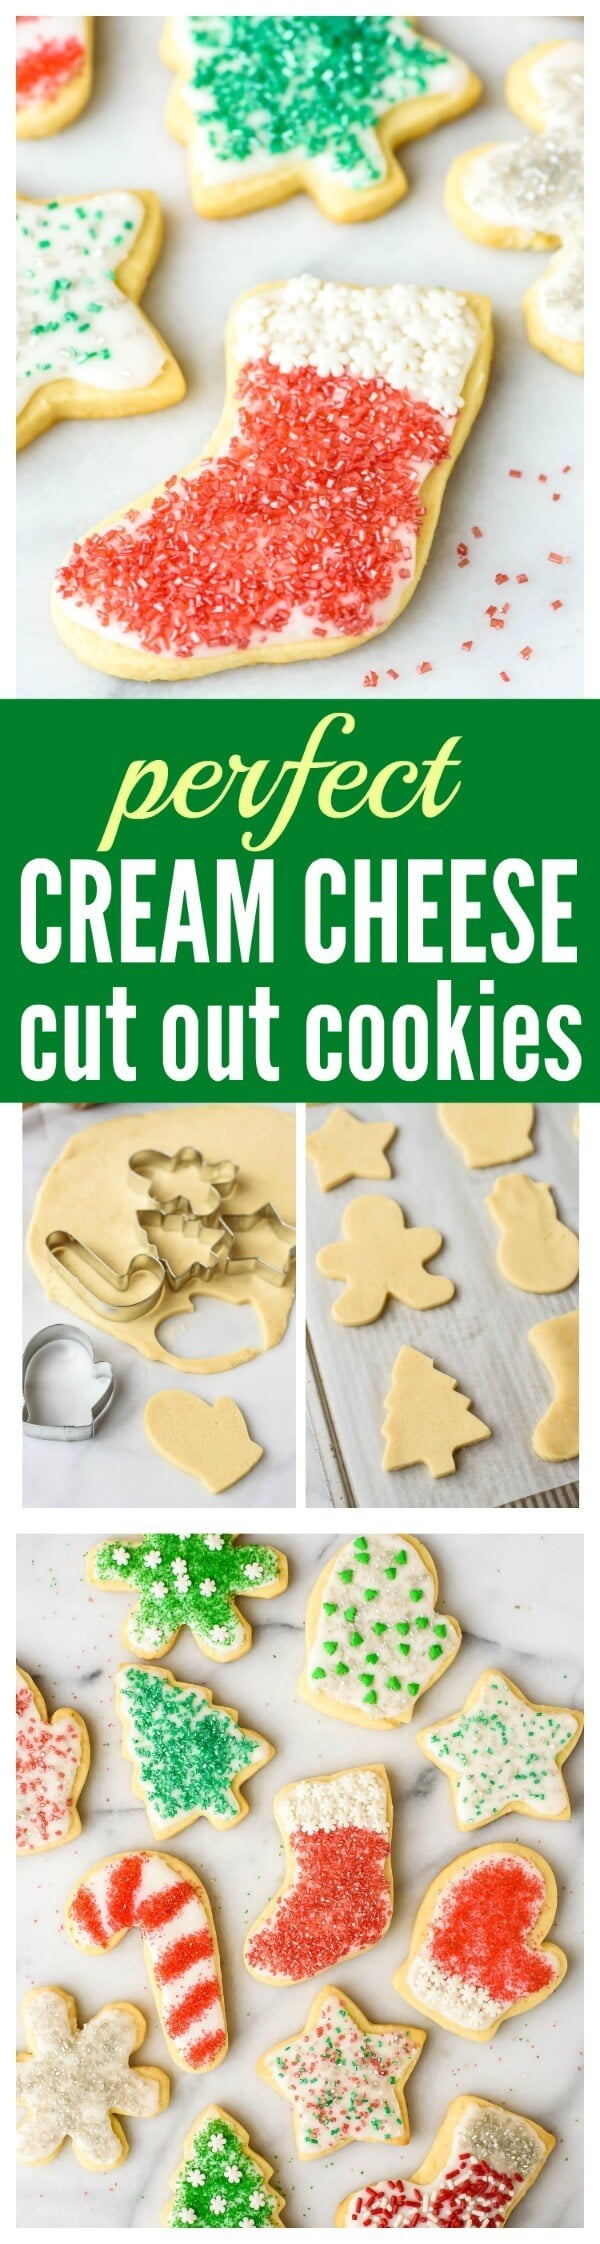 The BEST Cut Out Sugar Cookies from scratch, with step-by-step photos. Cream cheese is the secret ingredient that makes the sugar cookies super soft, even days after they are baked. This is the only cut out Christmas cookie recipe you will ever need!